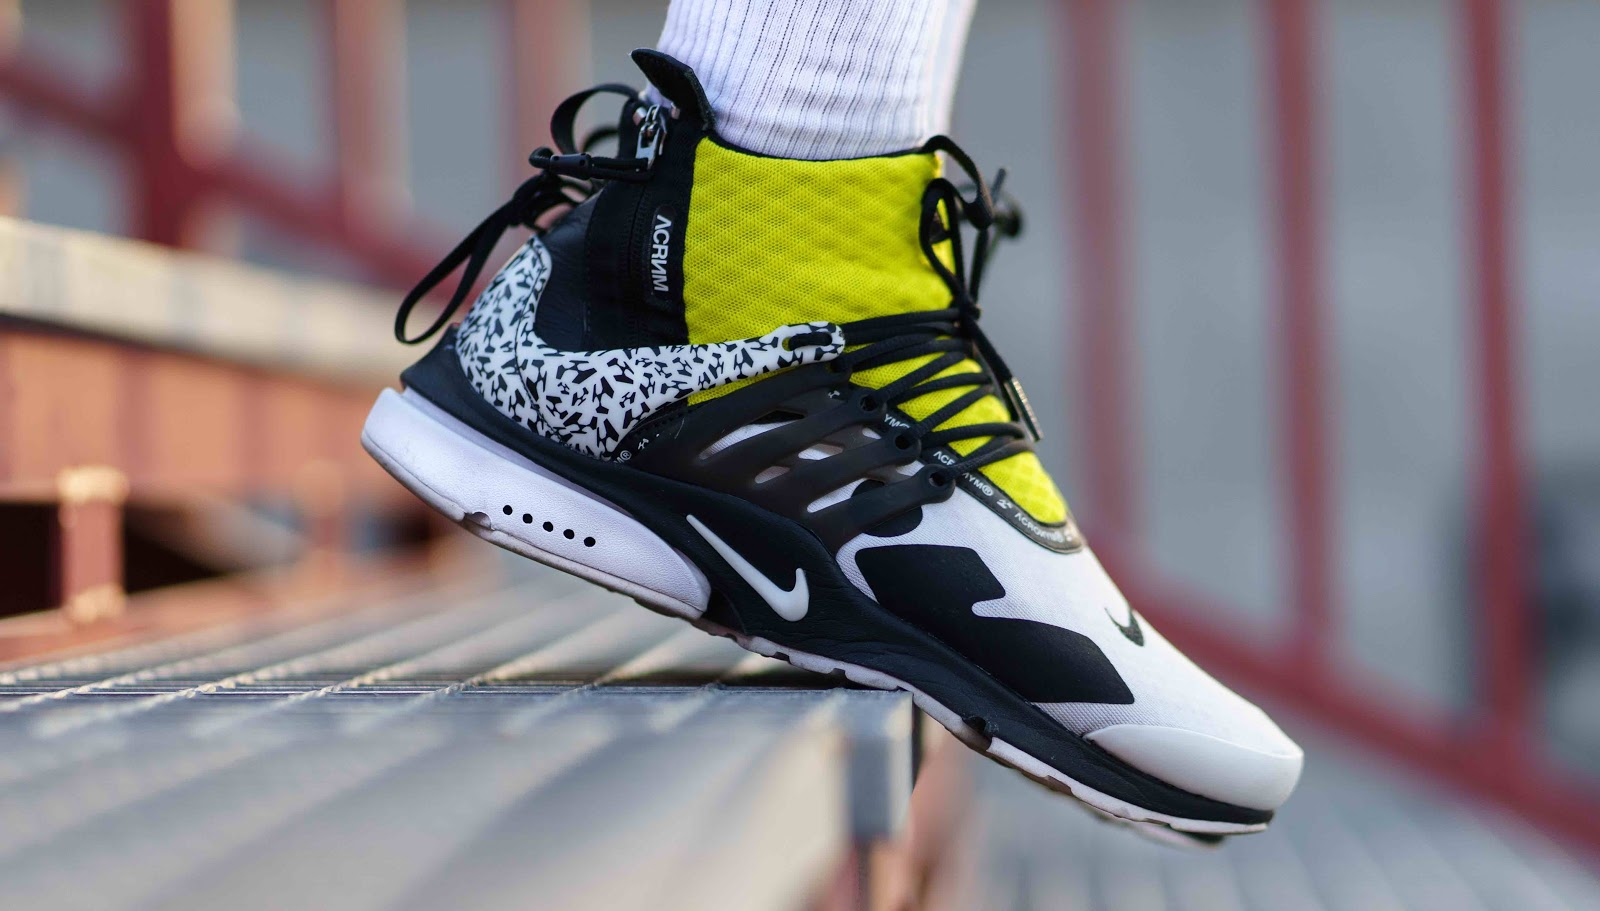 Top sneaker trends 2020 Grensland Mooiste